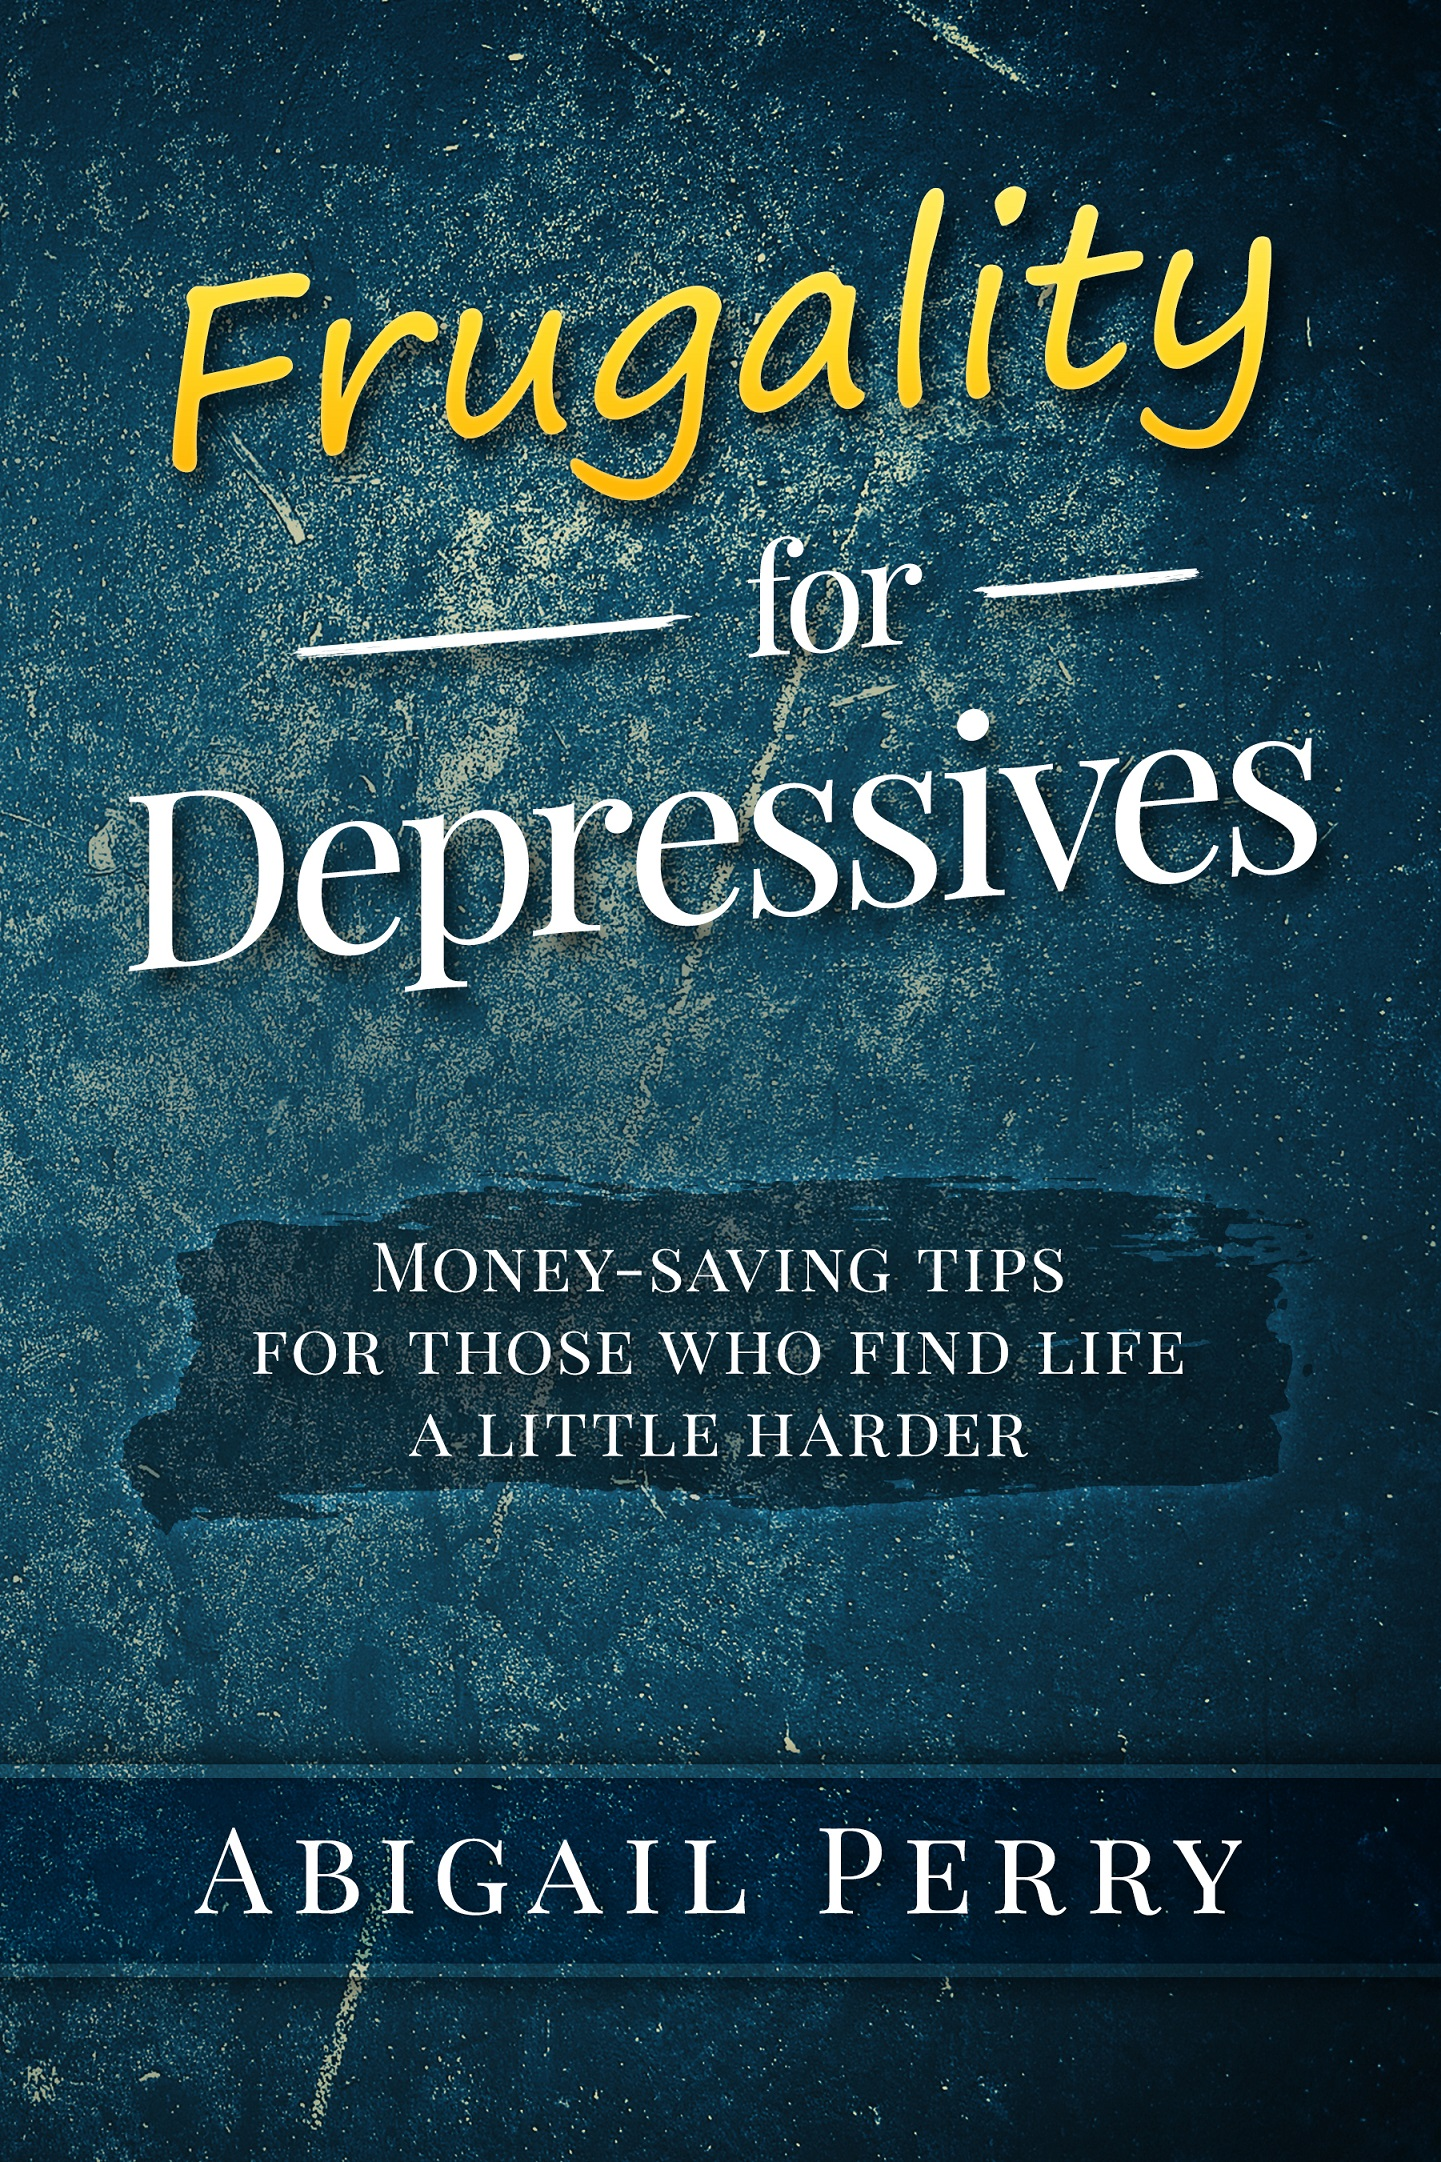 A great guide to saving money even with depression!